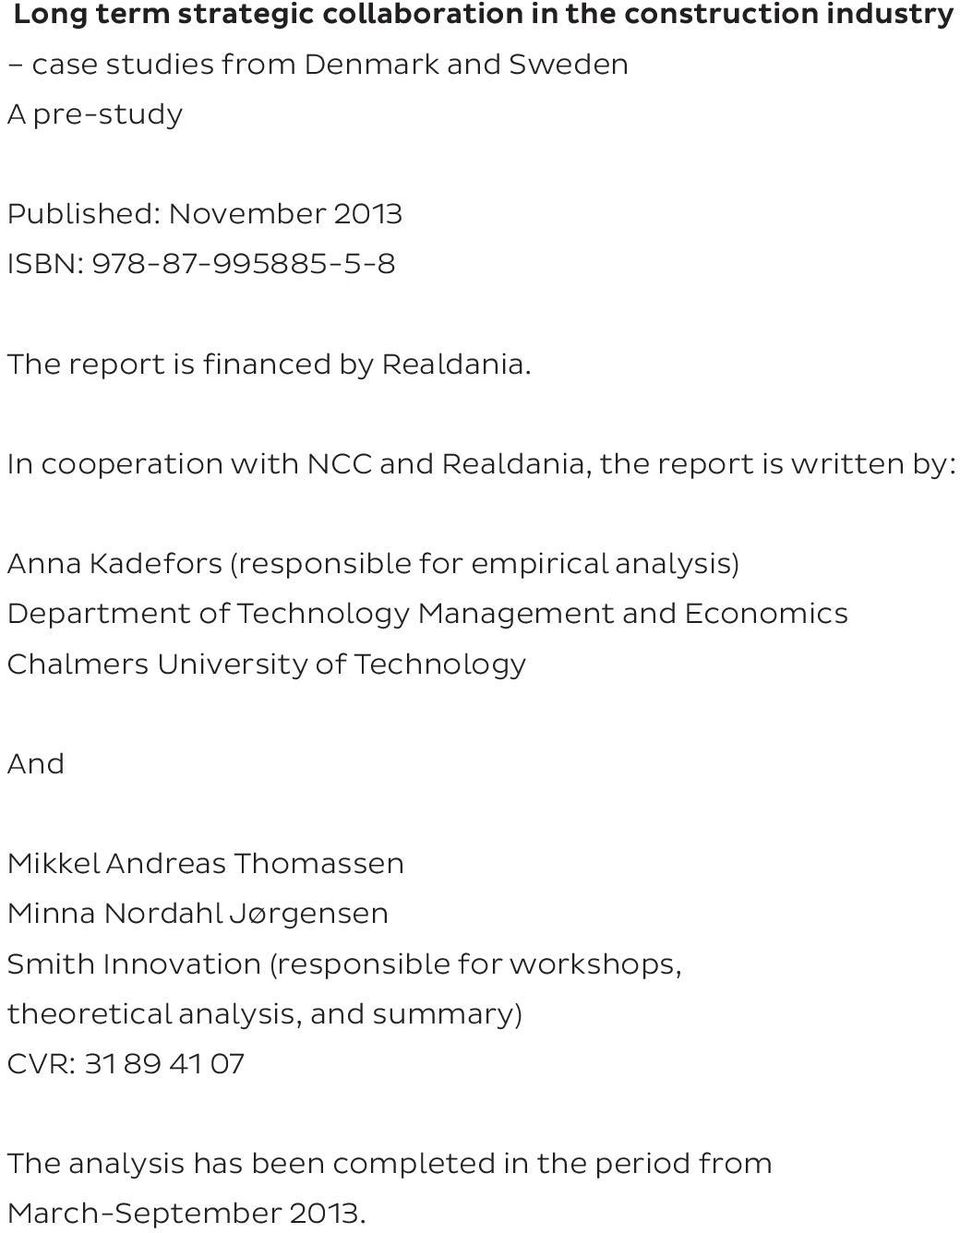 In cooperation with NCC and Realdania, the report is written by: Anna Kadefors (responsible for empirical analysis) Department of Technology Management